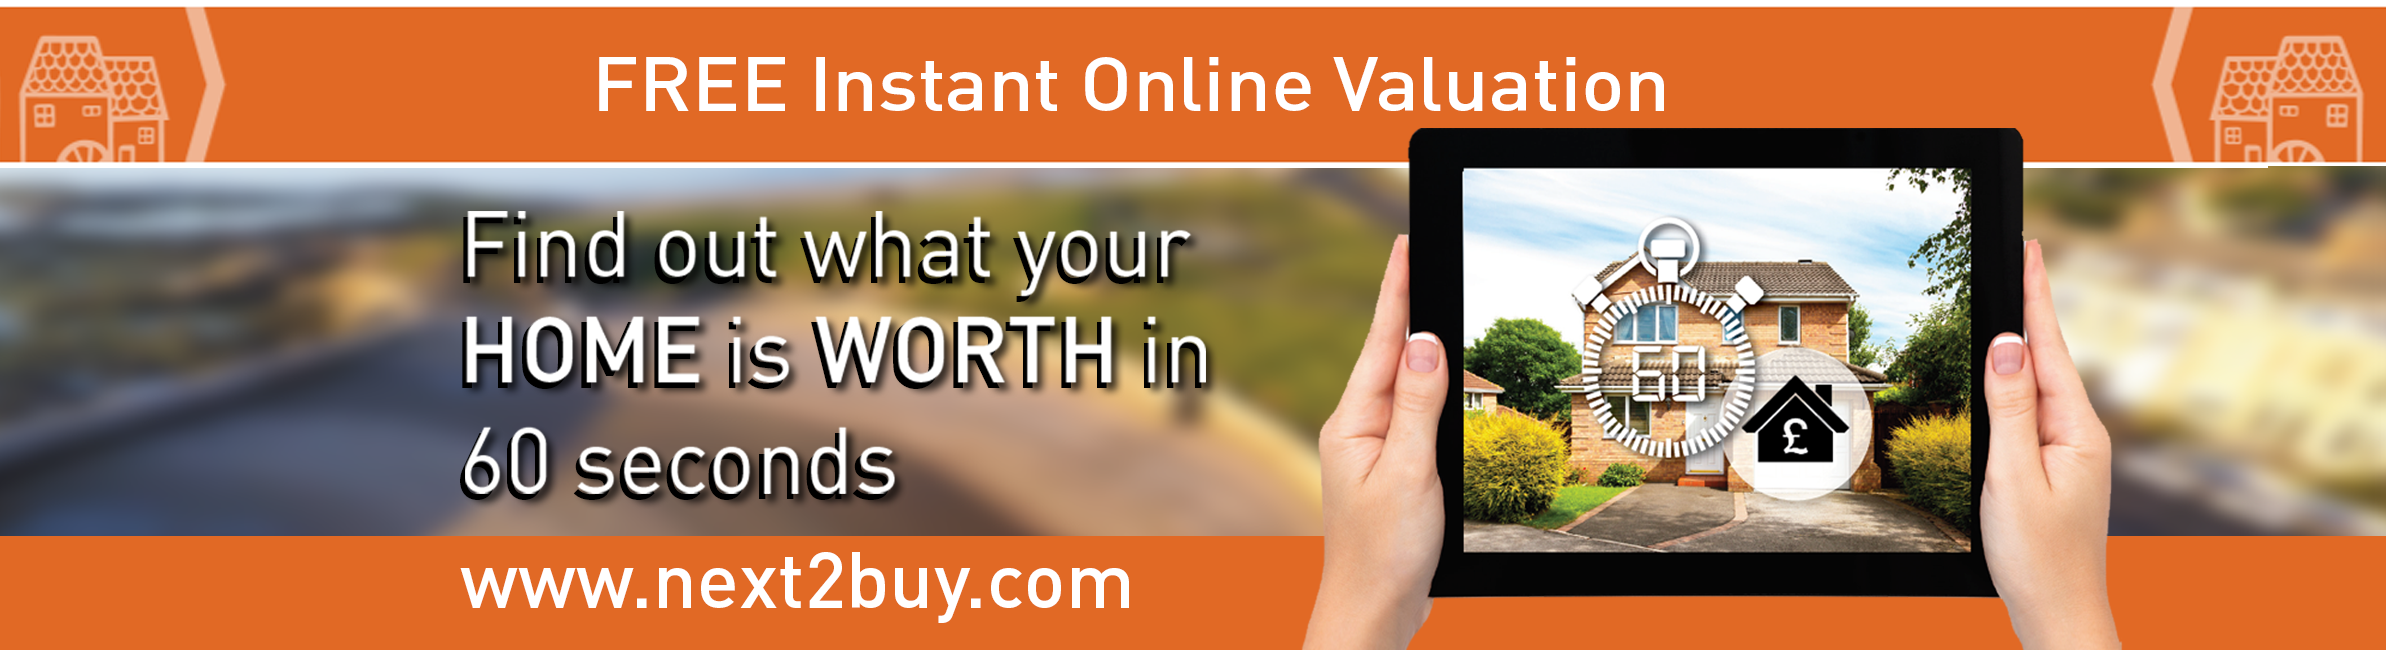 Free Instant Online Valuation